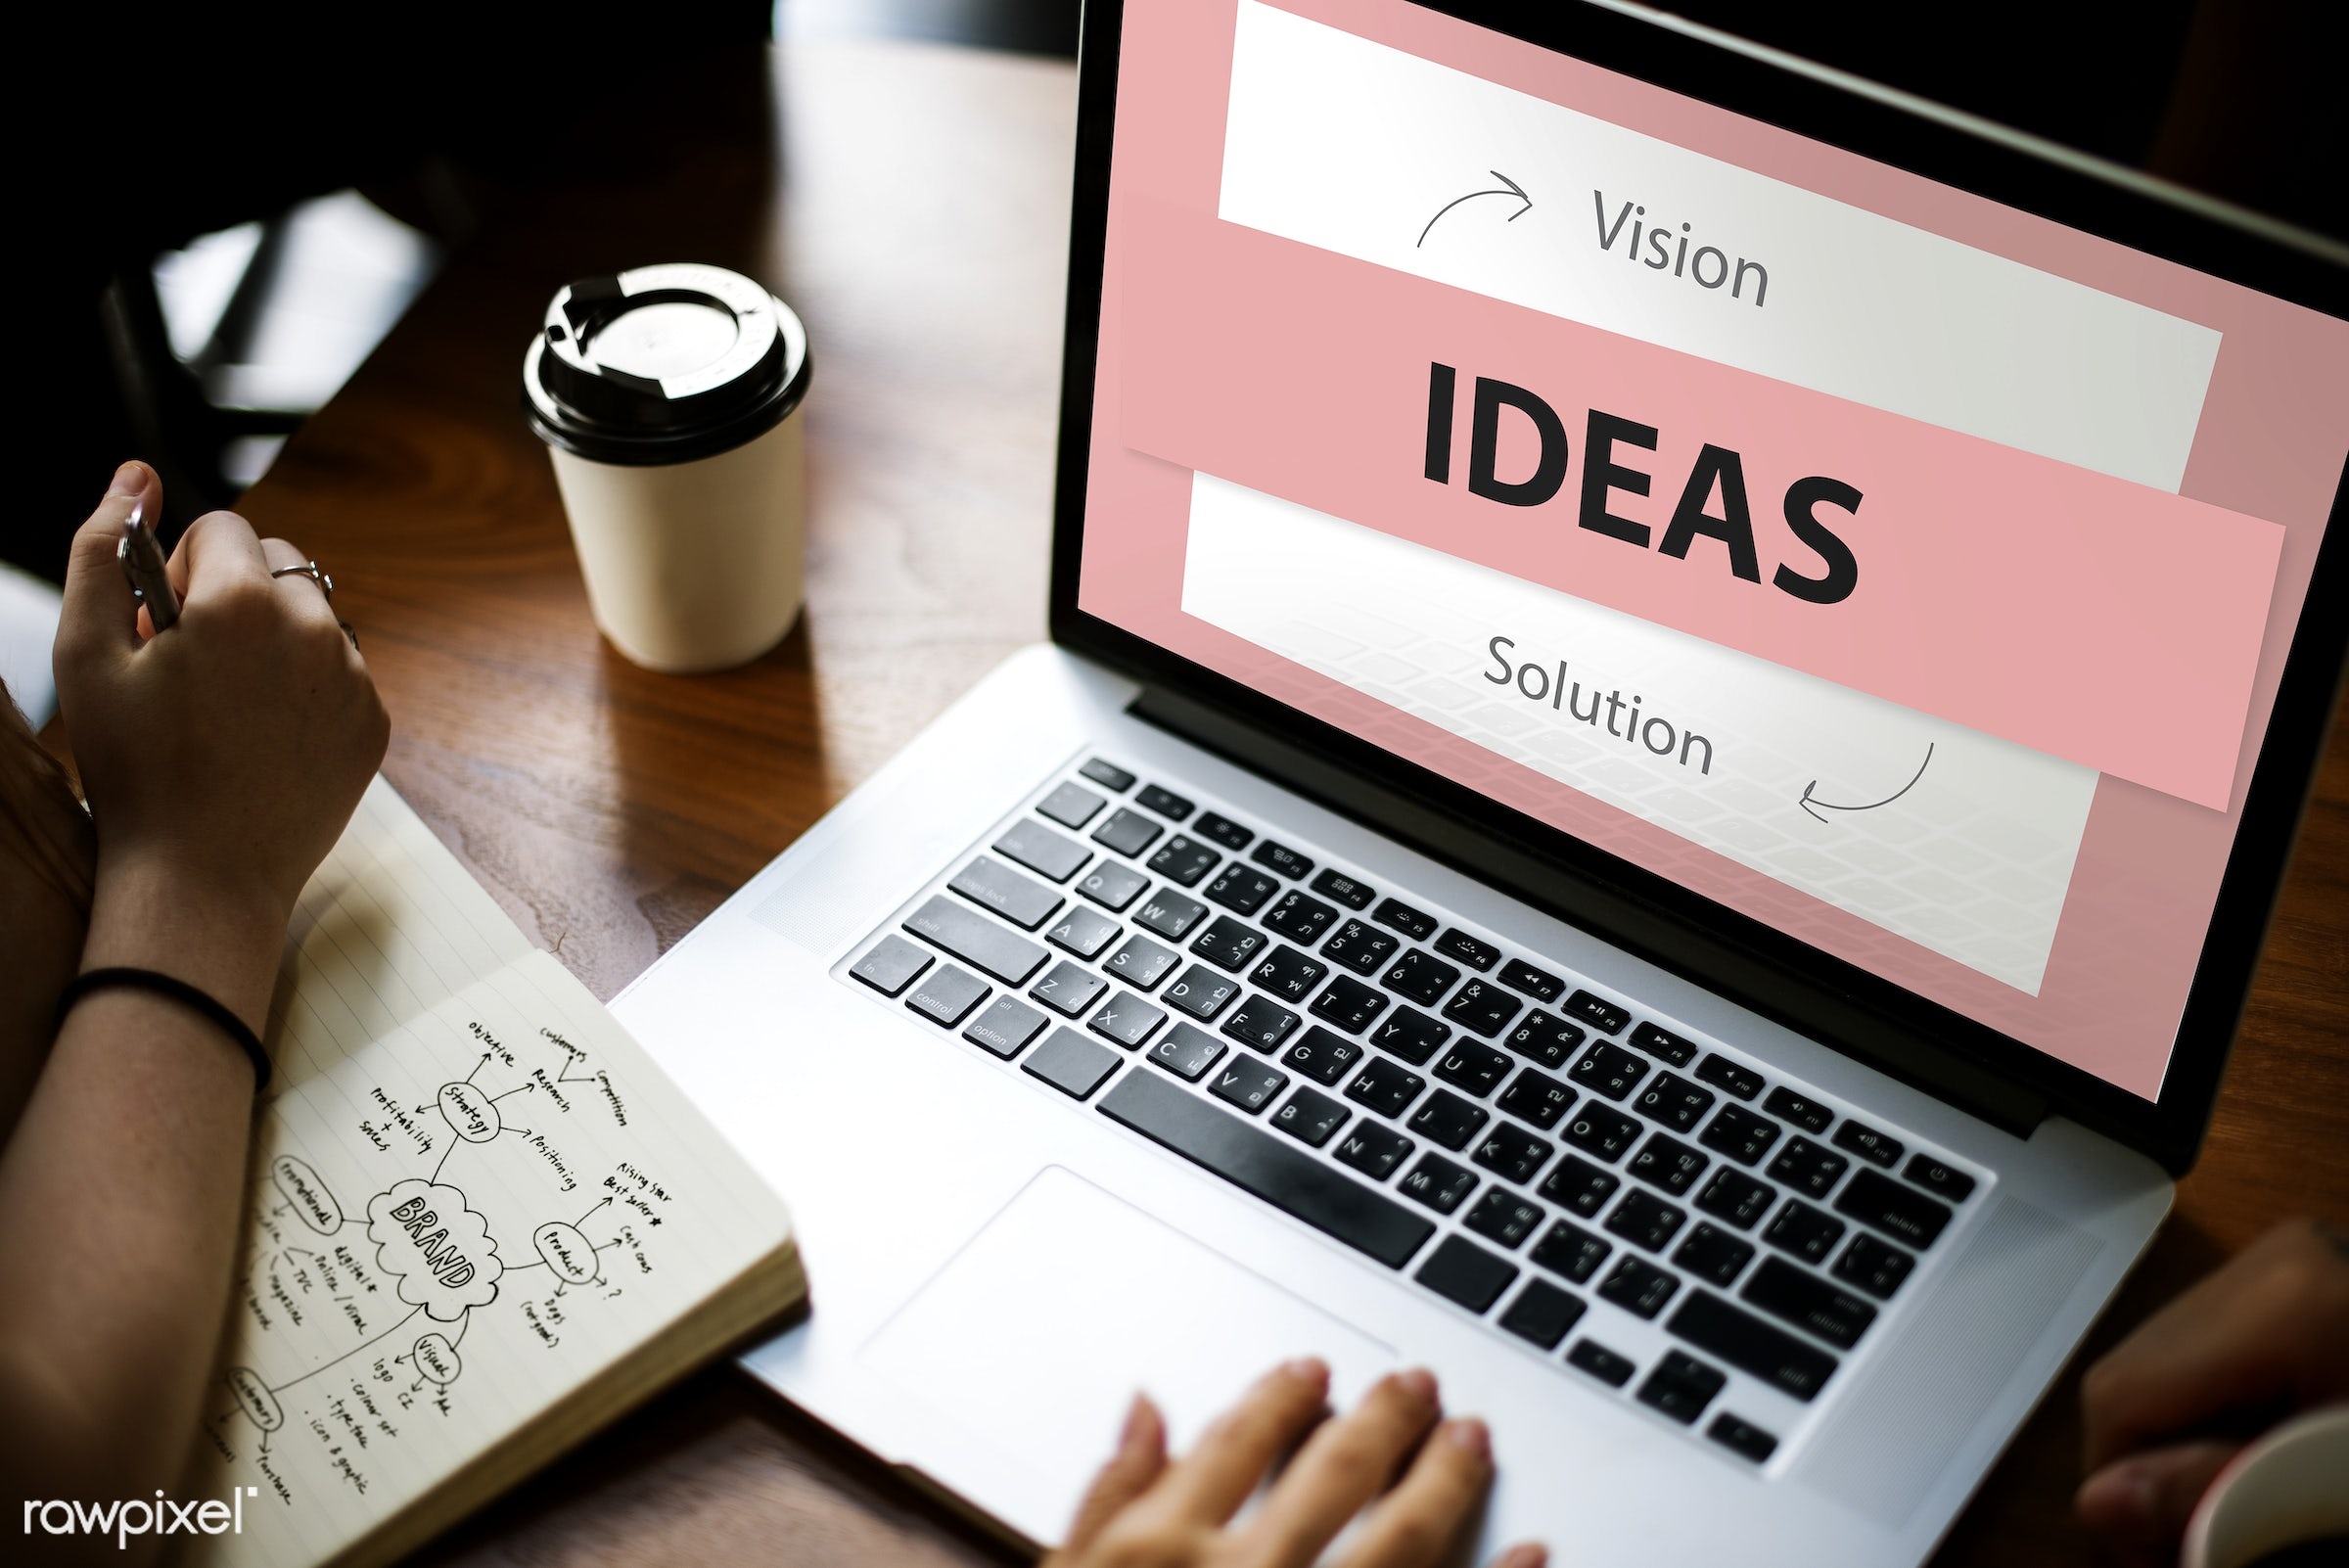 action, be, brainstorming, browsing, business, coffee cup, creative, creativity, device, digital, digital device, discussion...